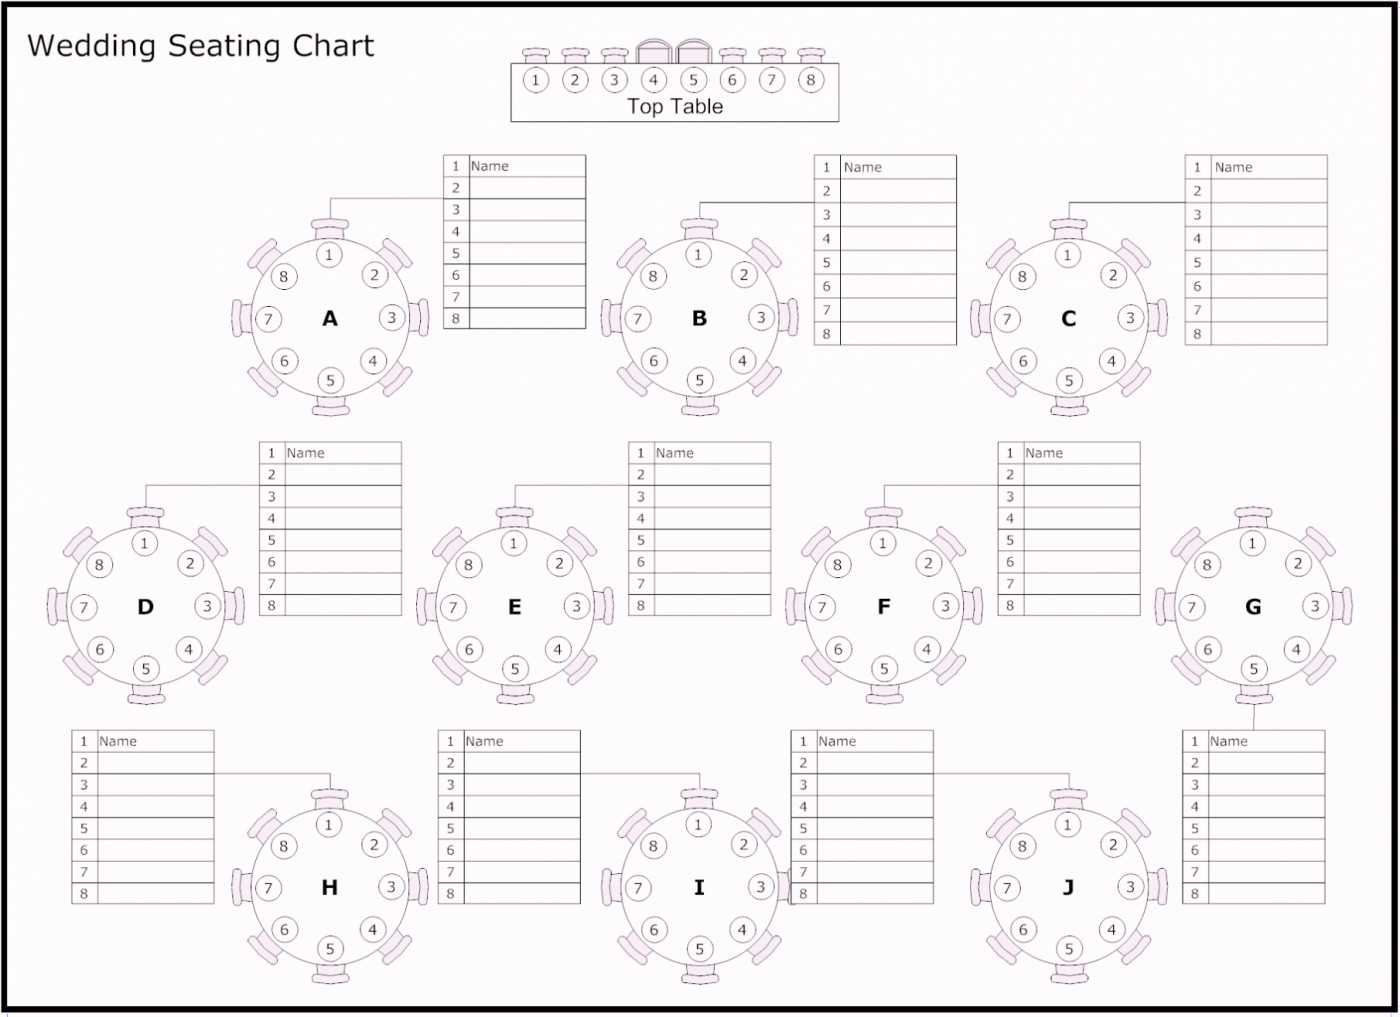 Template For Wedding Seating Chart Template Excel Within Wedding Seating Chart Template Excel Download For Free